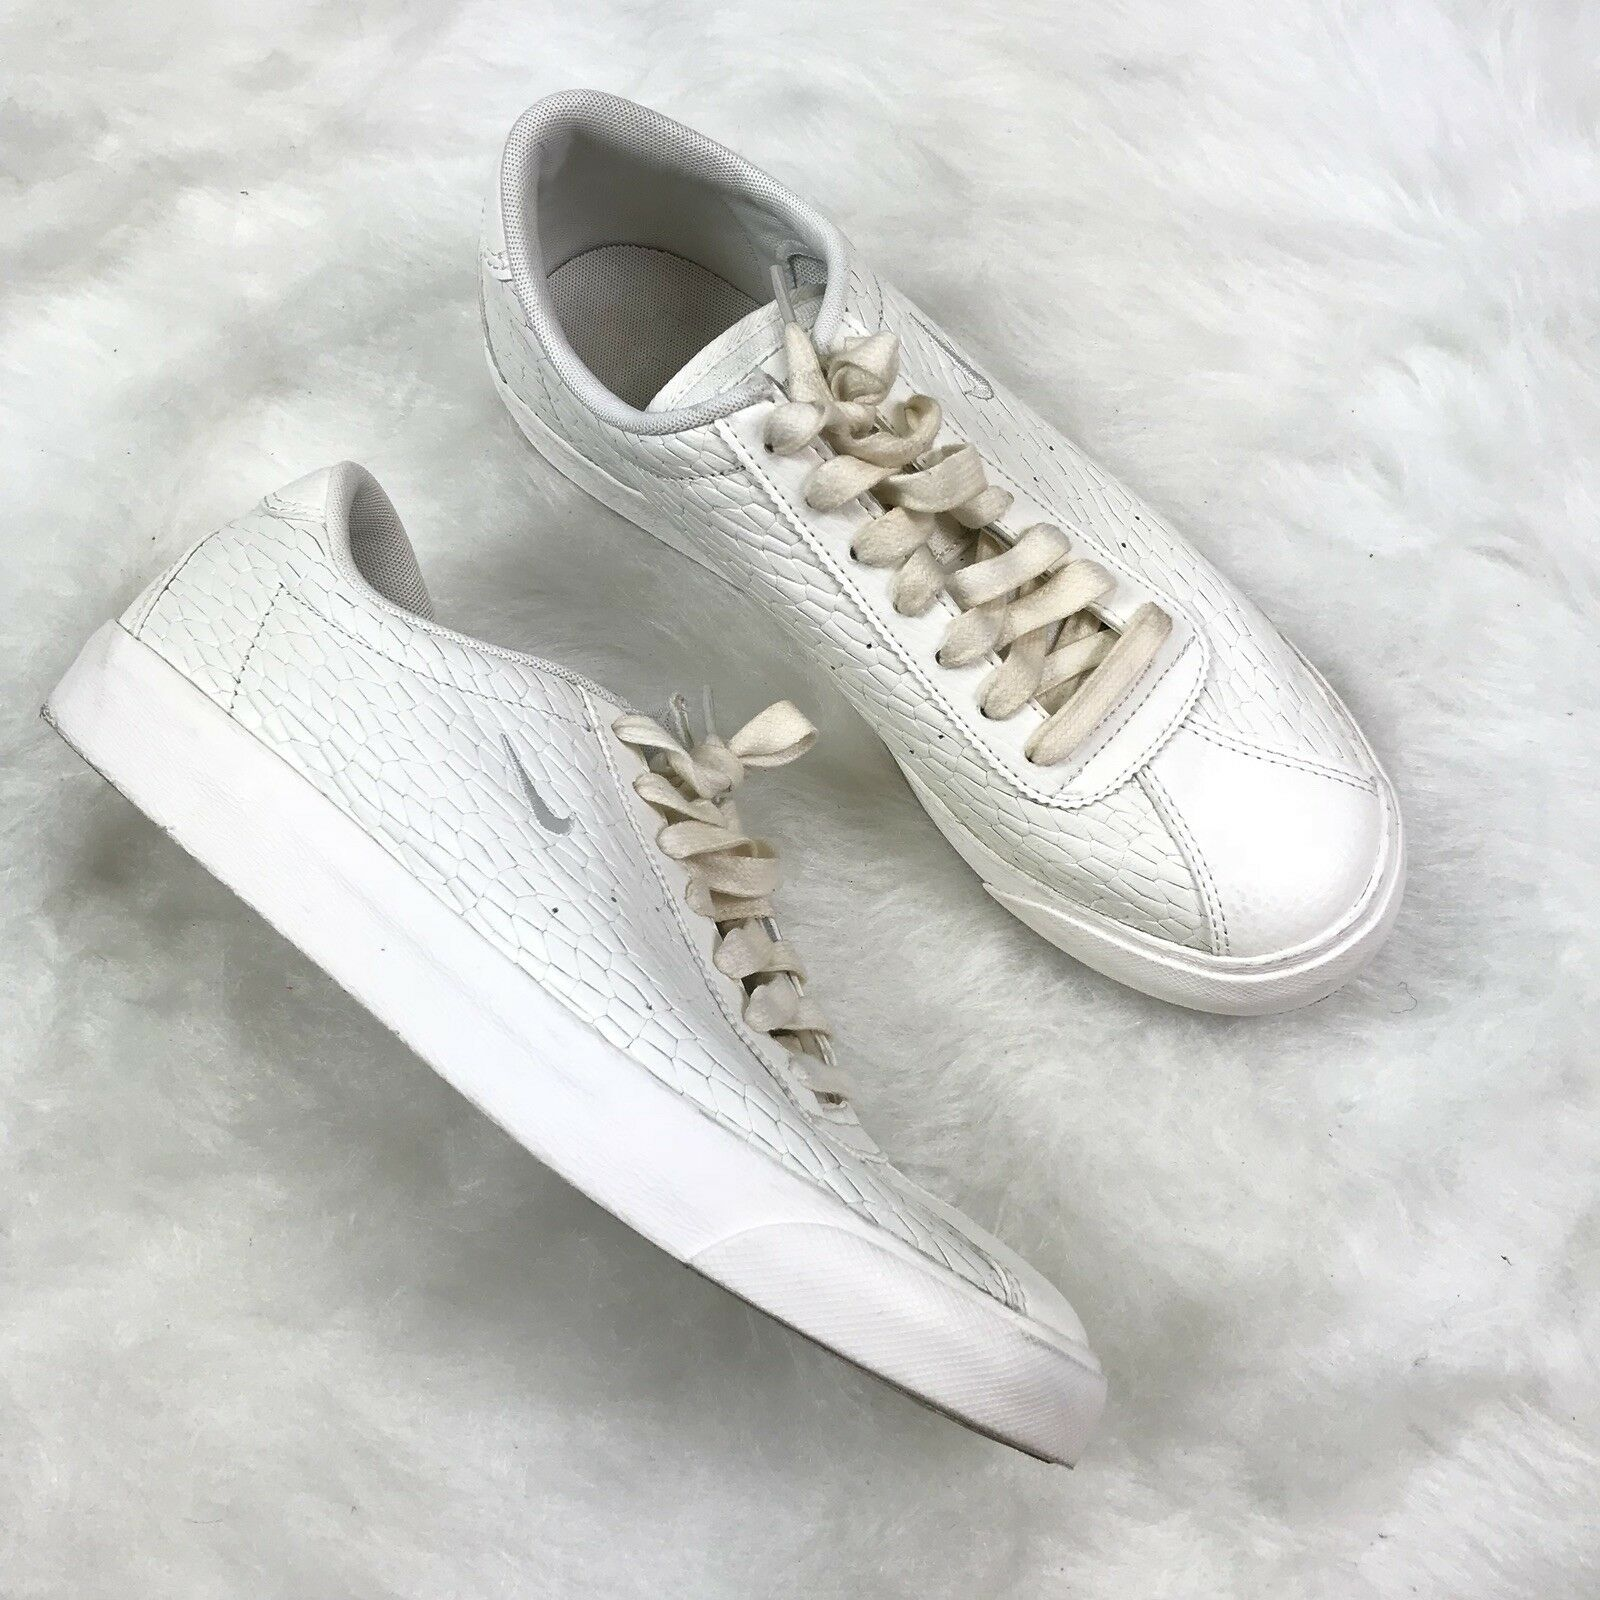 Nike Womens Shoes 896502-100 White Match Classic Premium Snake Embossed Leather